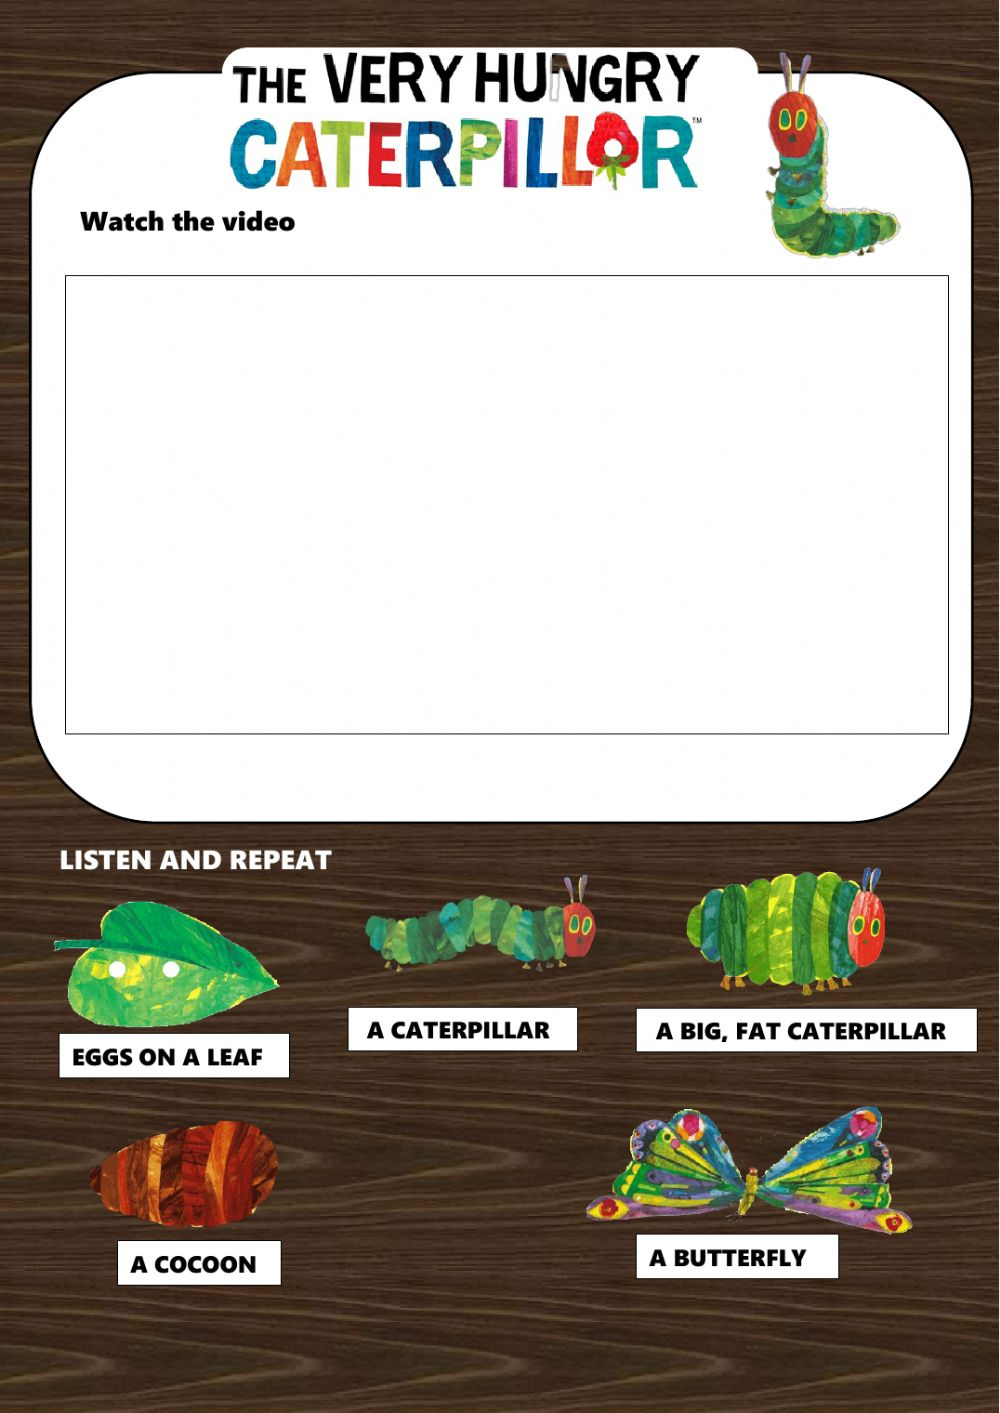 The very hungry caterpillar online exercise for 21 grade